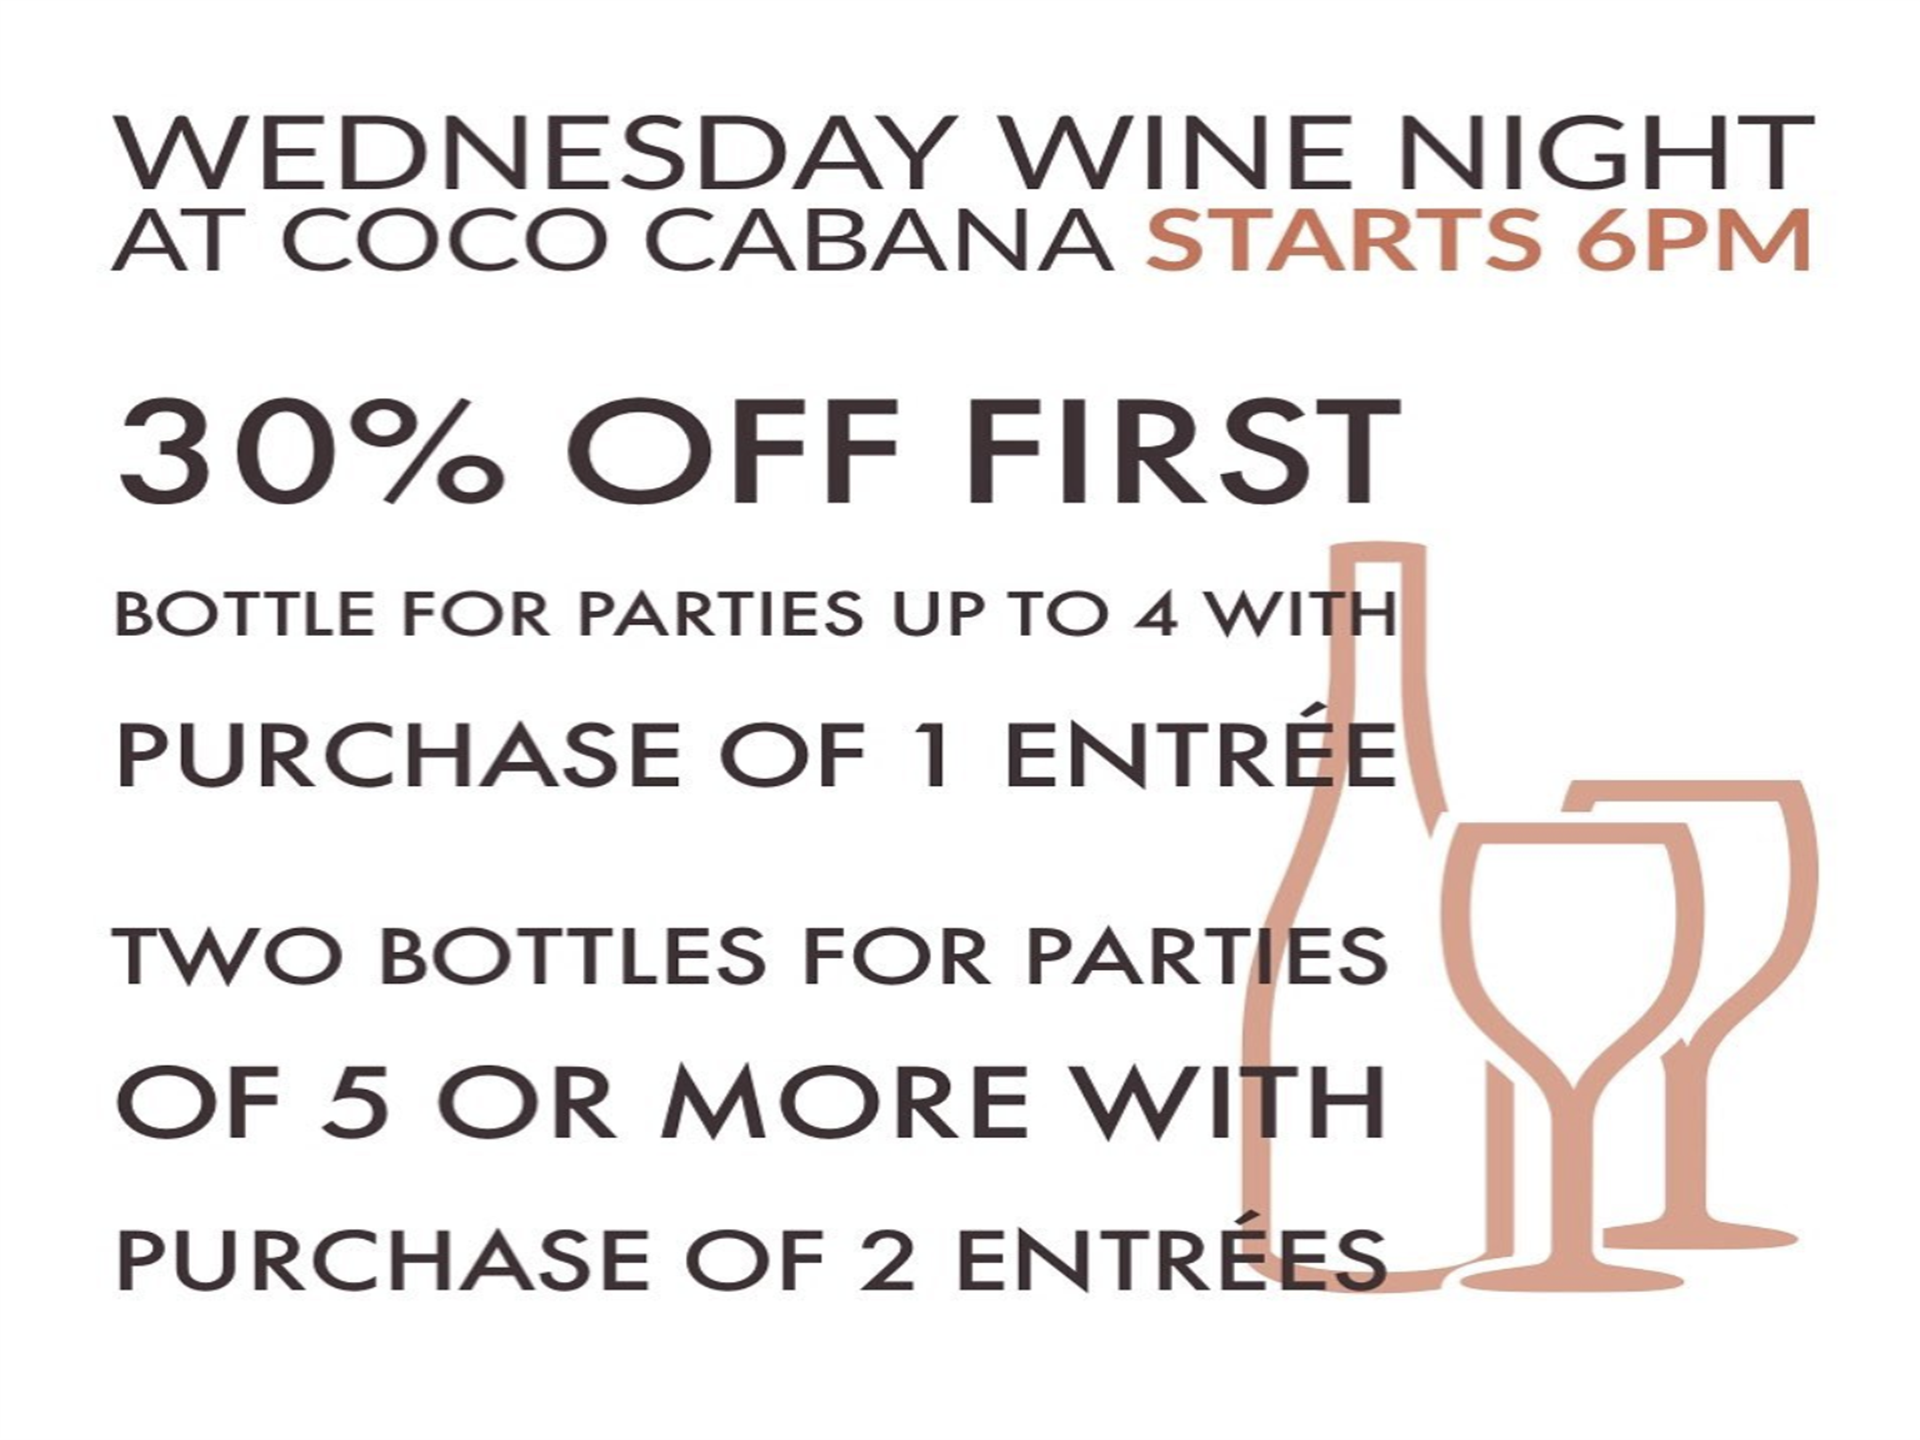 wednesday wine night at coco cabana starts at 6pm 30% off first bottle for parties up to 4 with purchase of 1 entree two bottles for parties of 5 or more with purchase of 2 entrees